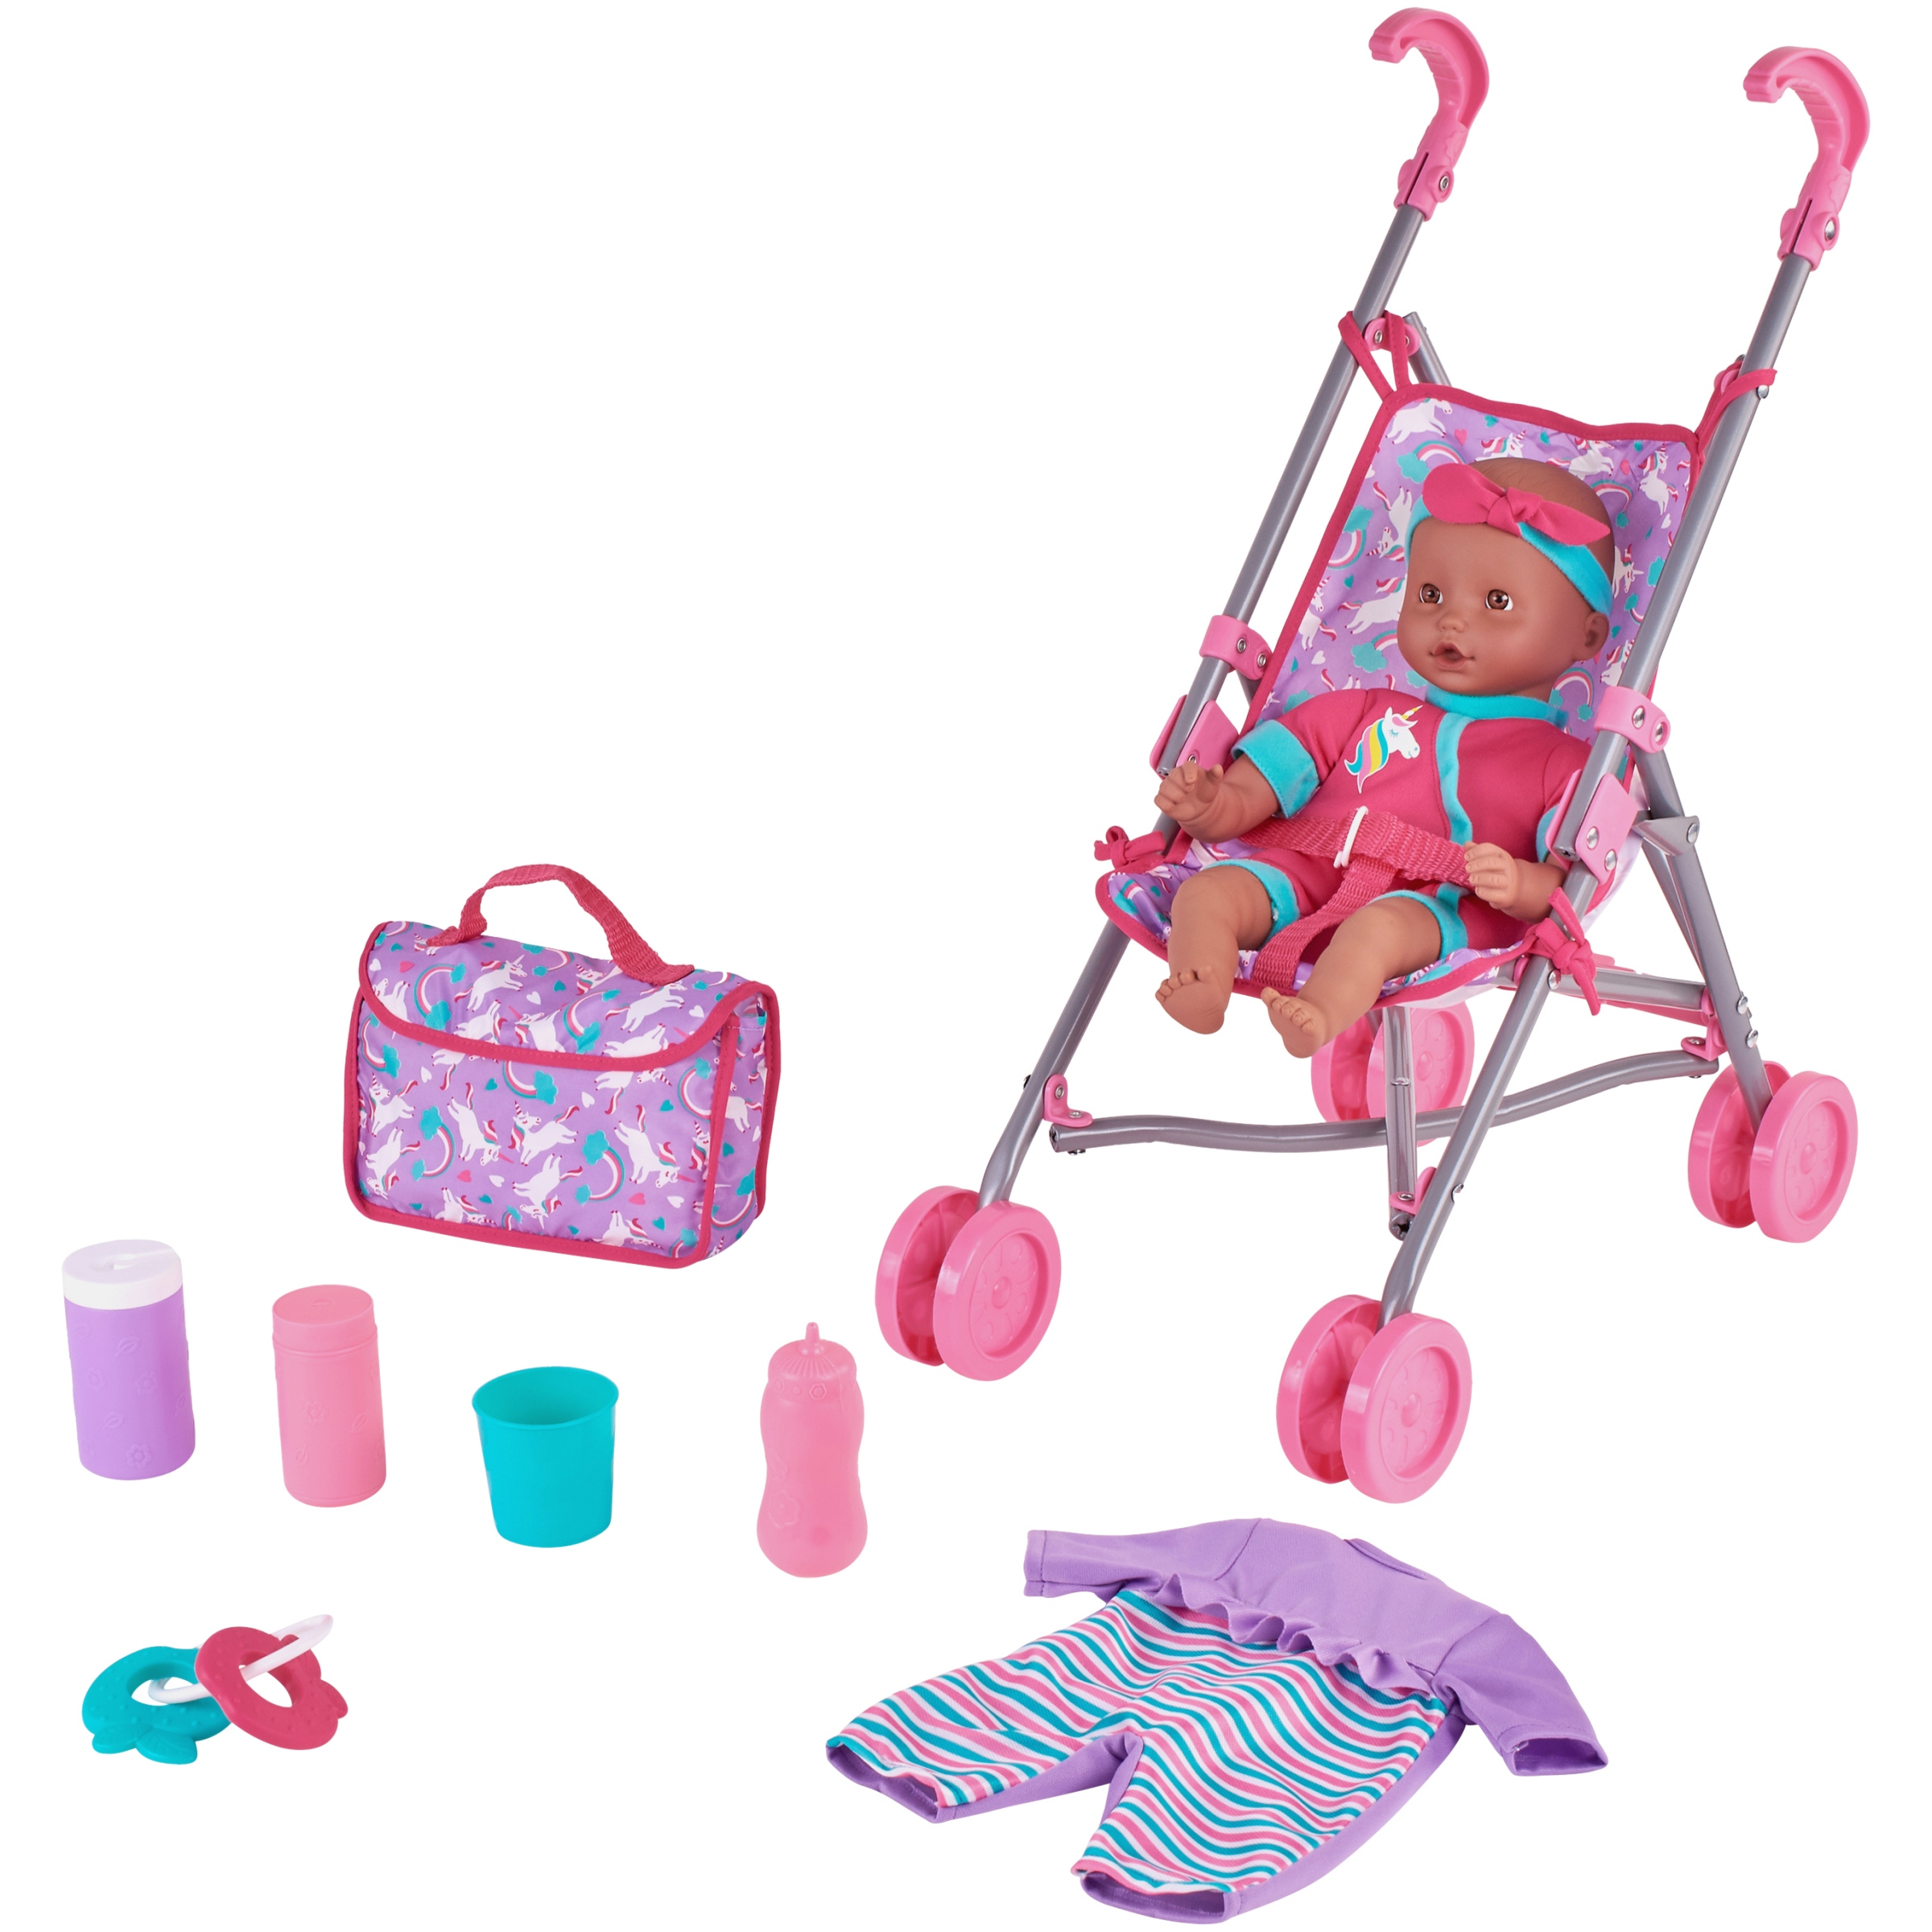 Kid Connection 9-Piece Baby Doll Stroller Set, Purple & Pink